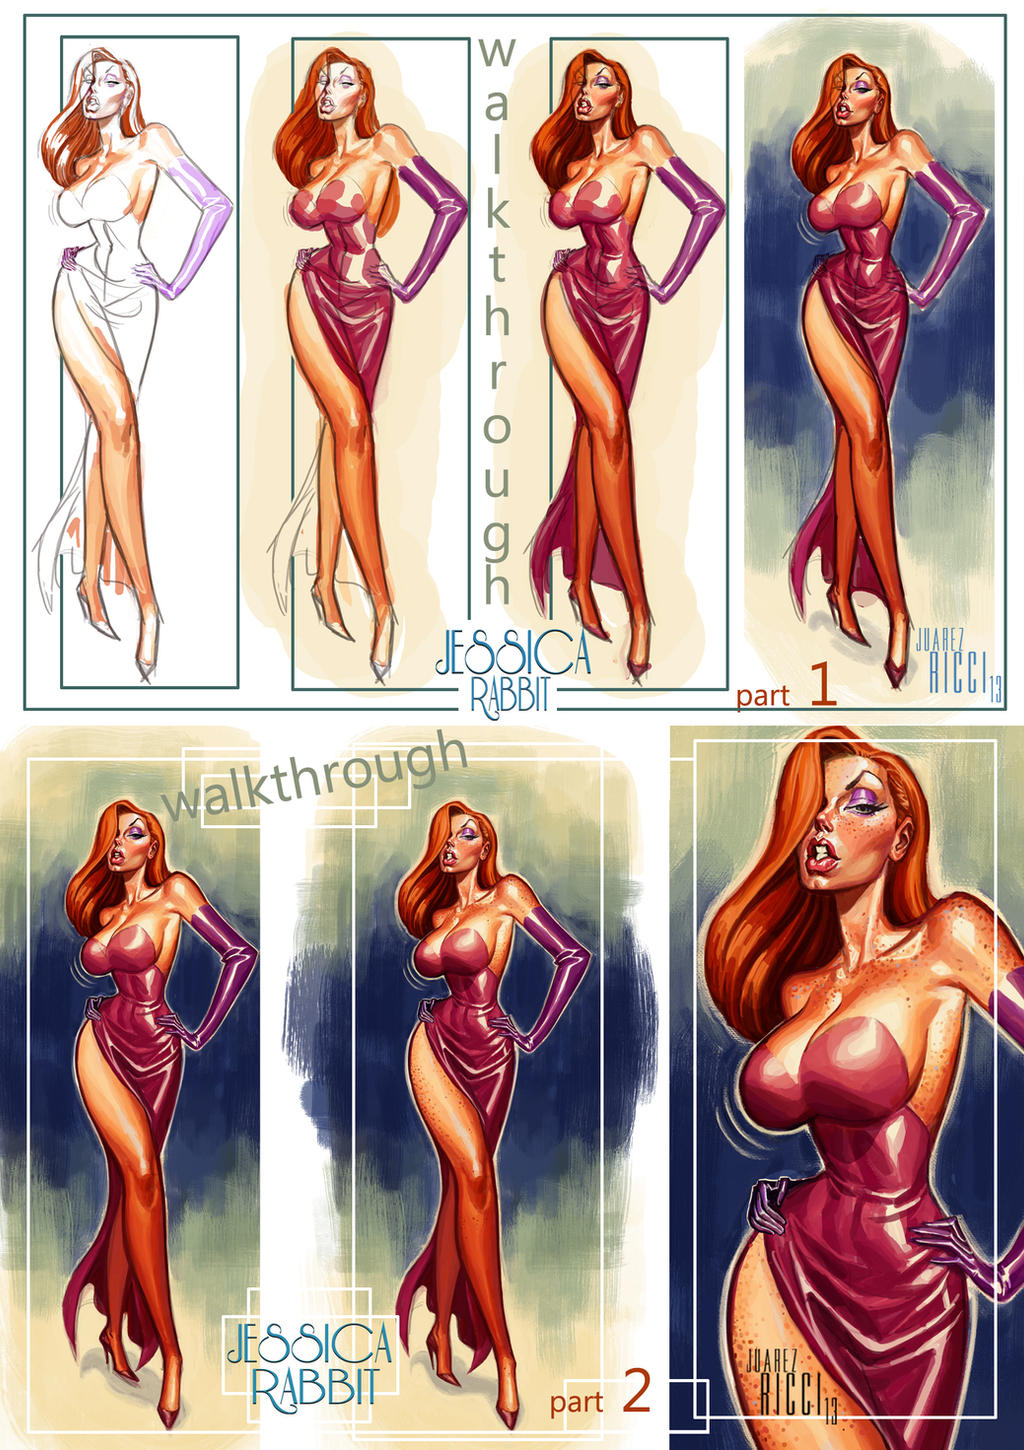 Jessica Rabbit walkthrough by juarezricci